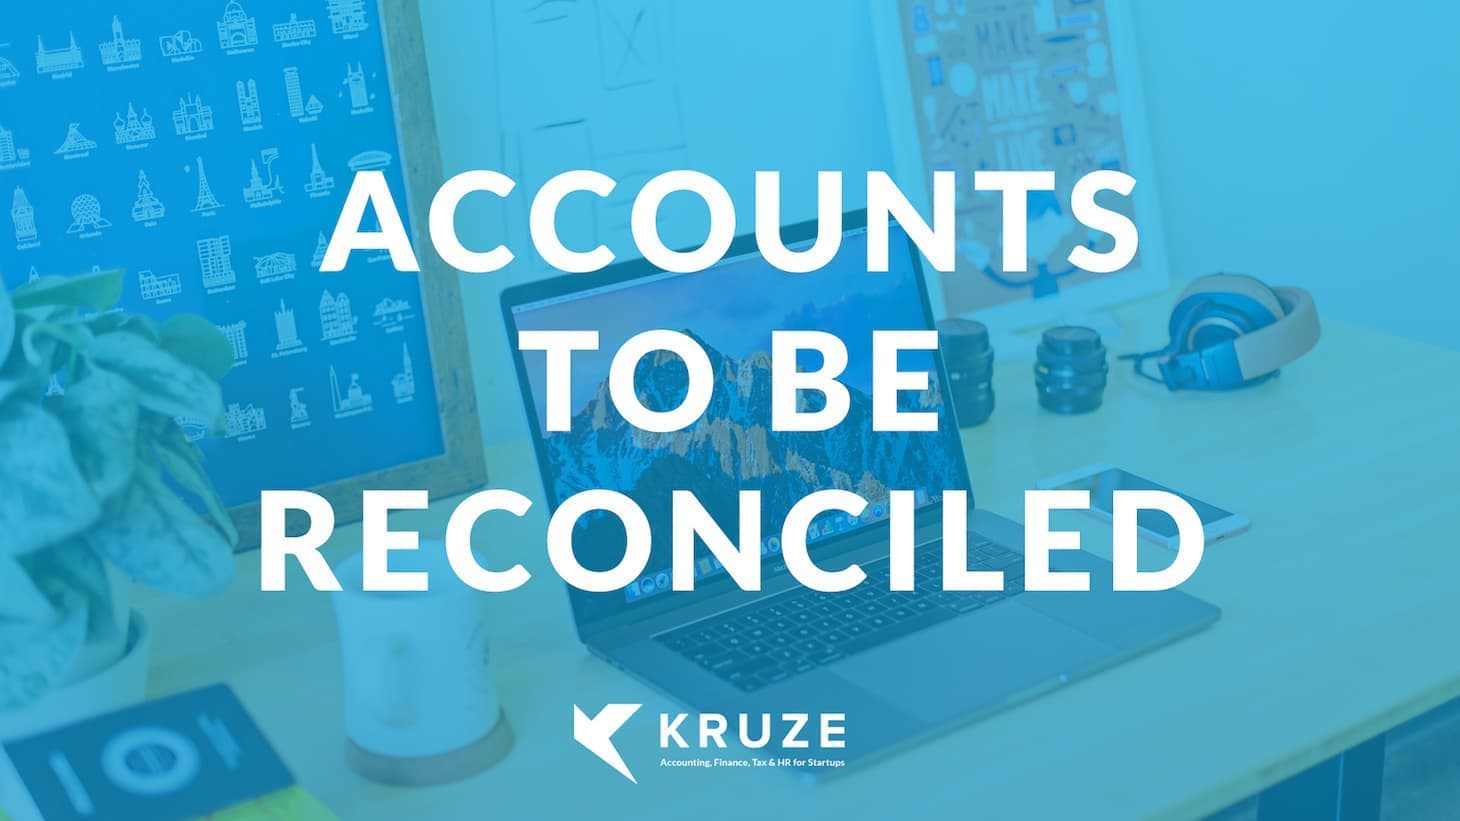 What Startup's Accounts on the Balance Sheet Need to be Reconciled